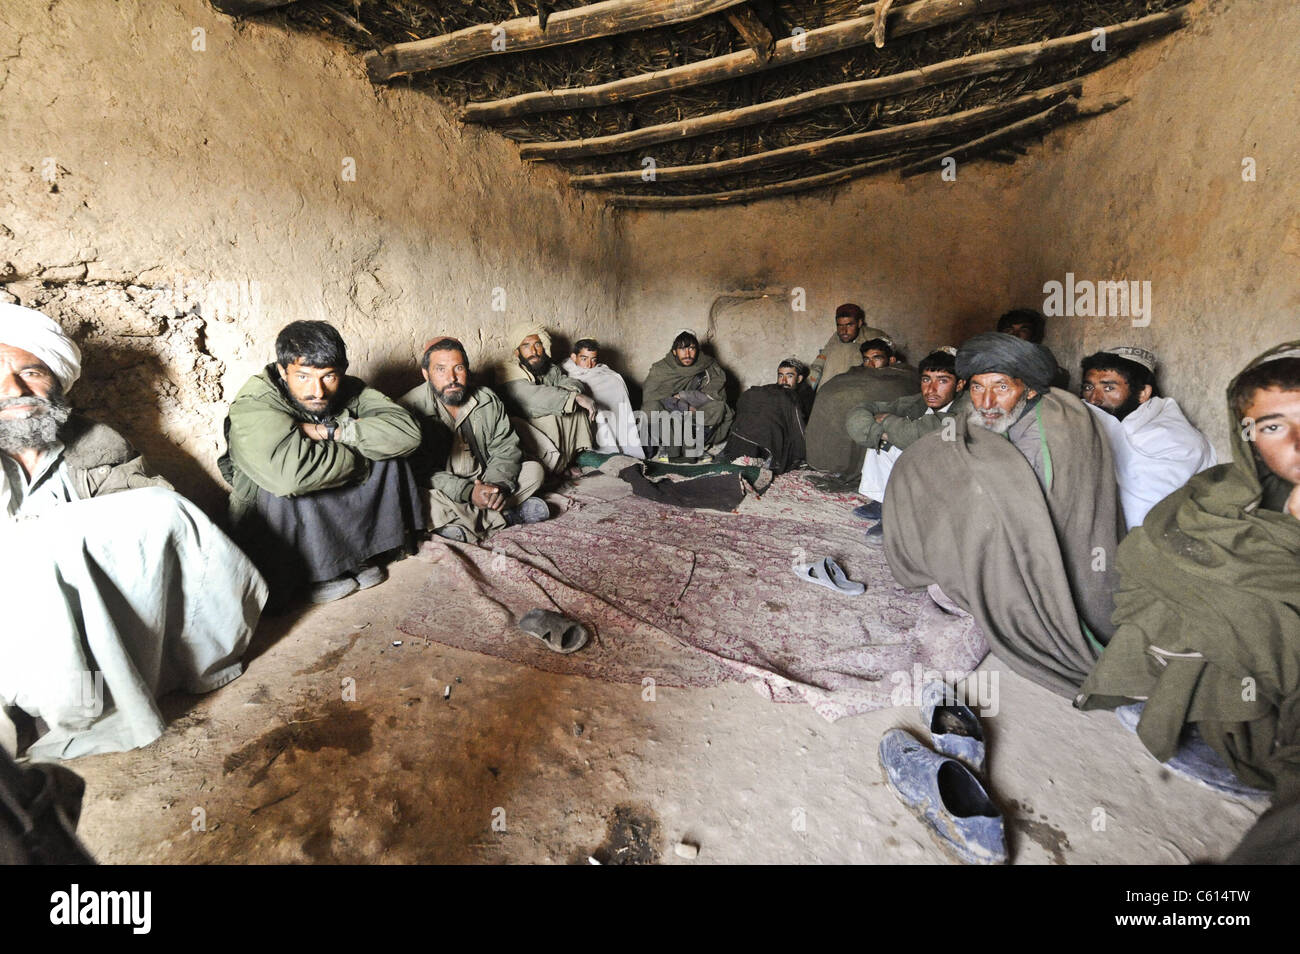 Suspected Taliban detainees held for questioning by Afghan National Army soldiers in Badula Qulp Helmand province - Stock Image